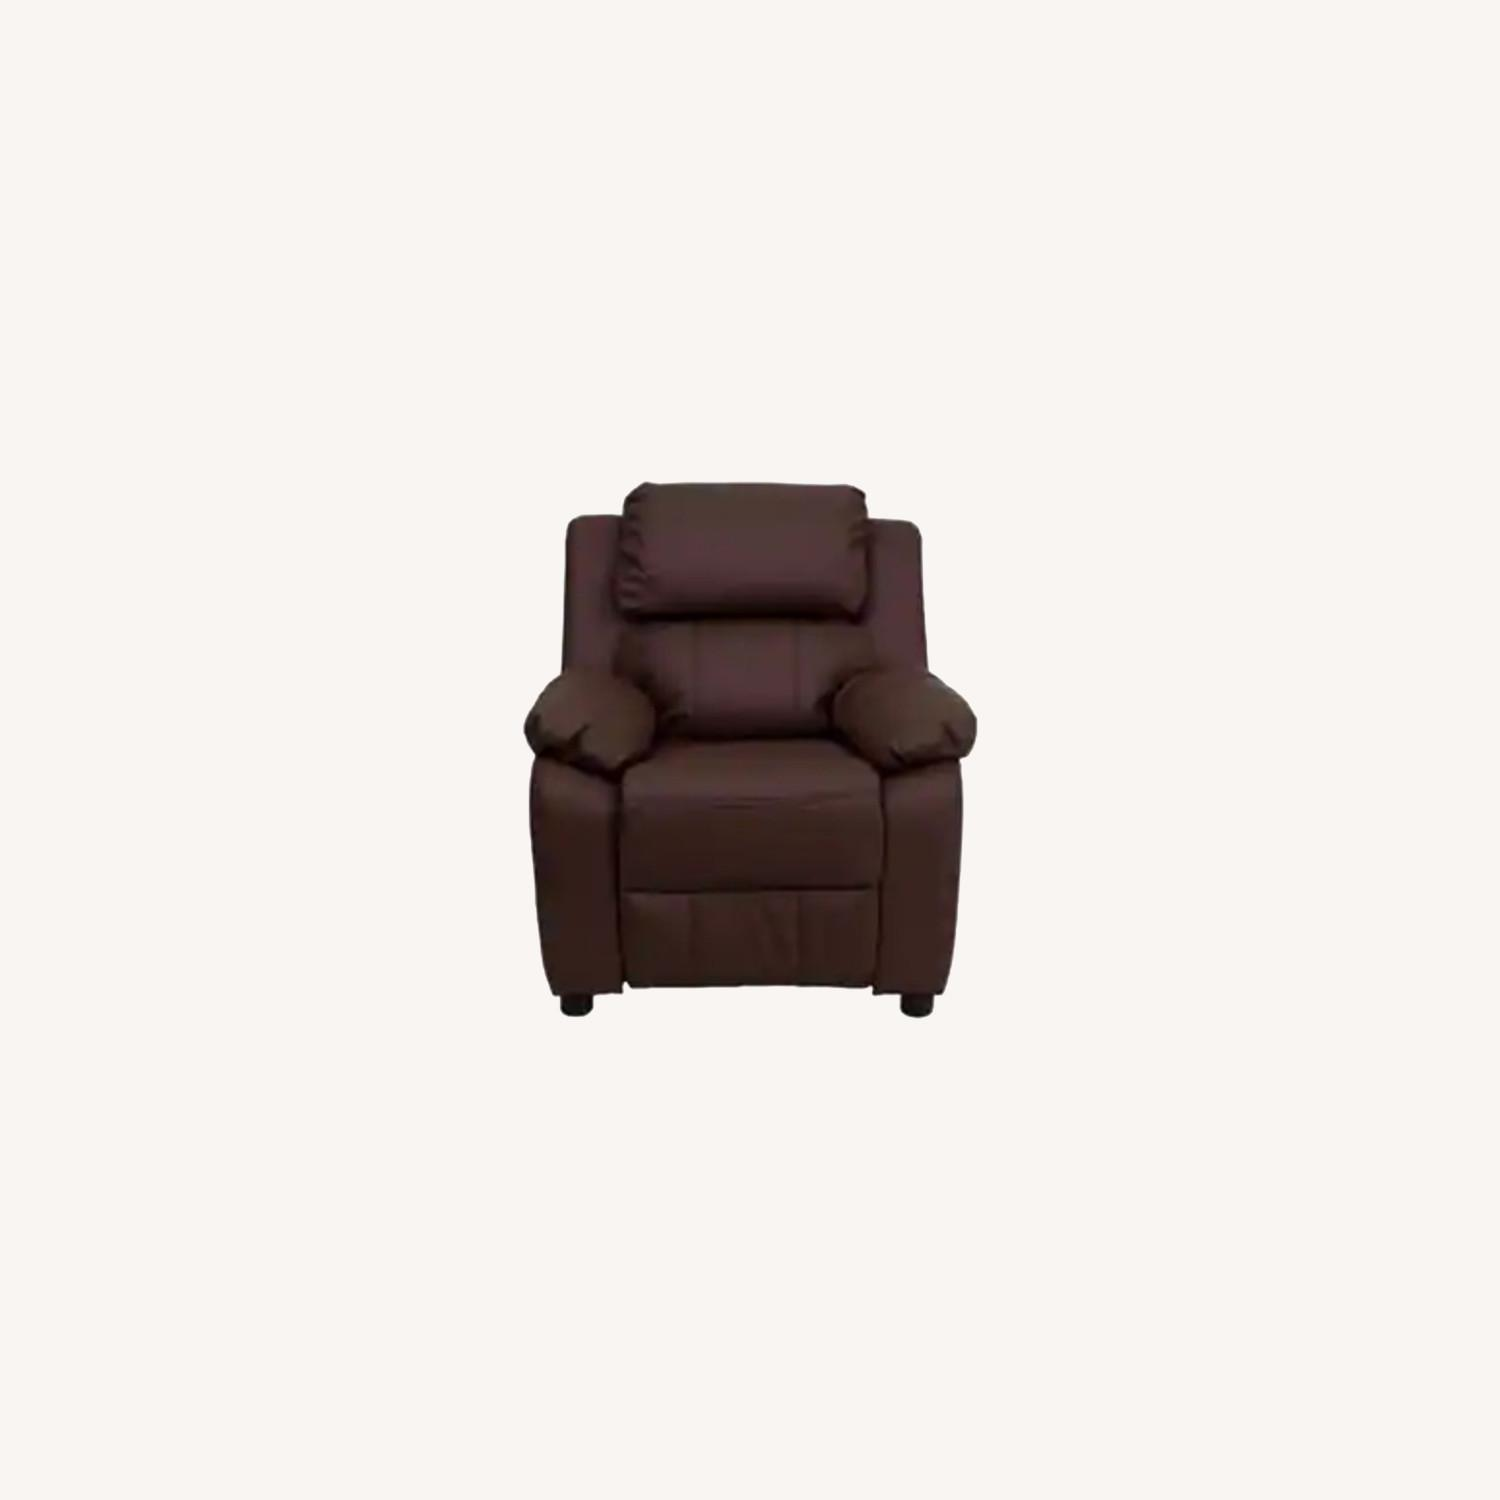 Wayfair Kids Leather Recliner - image-0